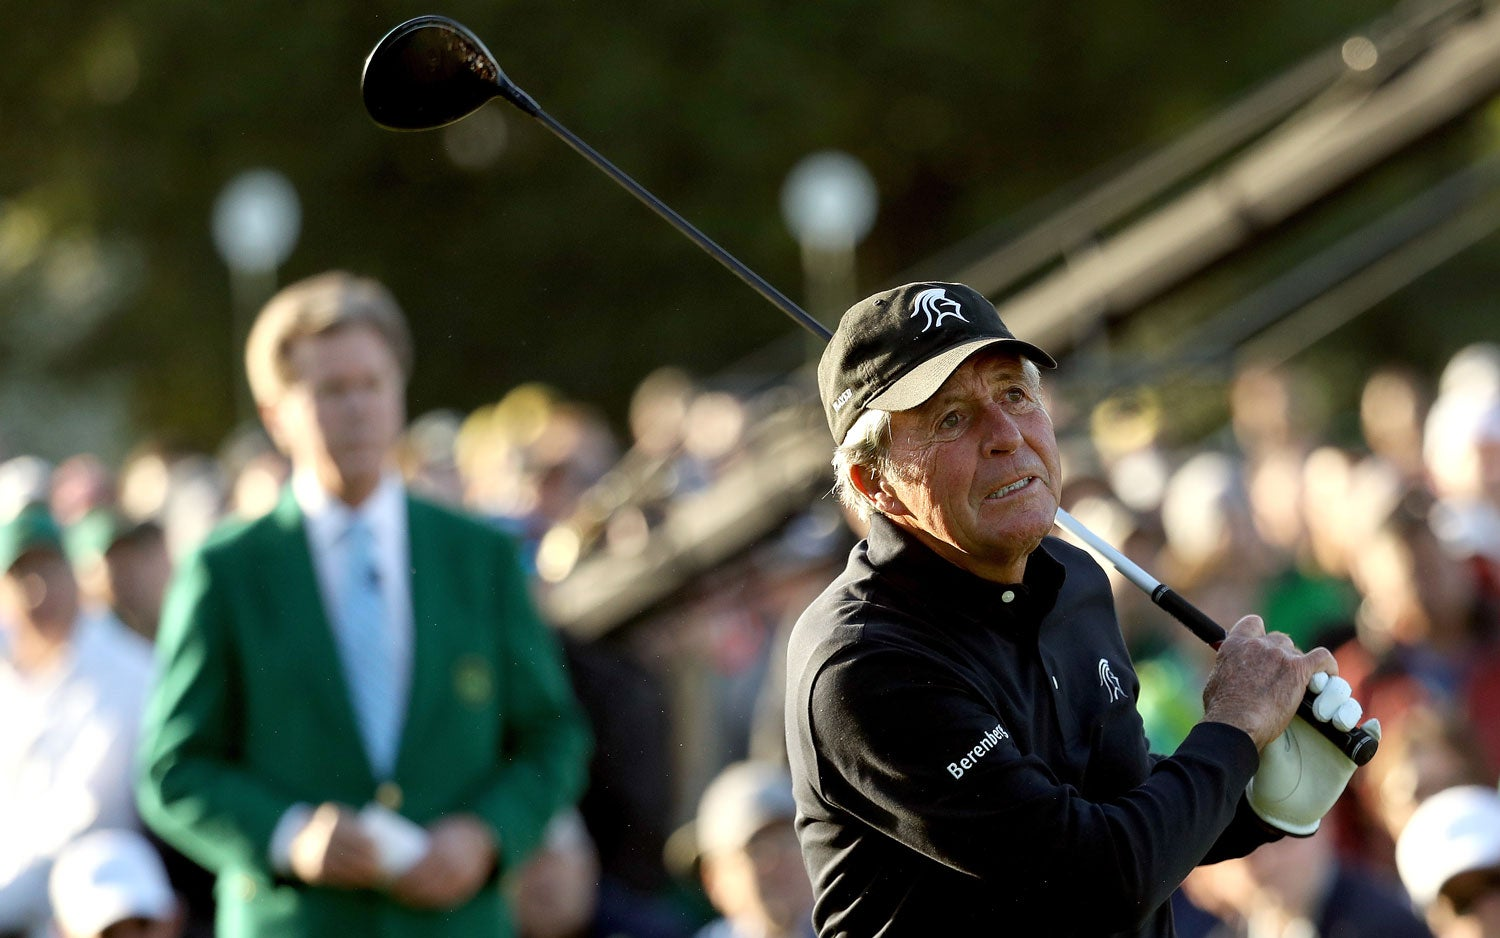 Gary Player hits a ceremonial tee shot down the first fairway at Augusta National.